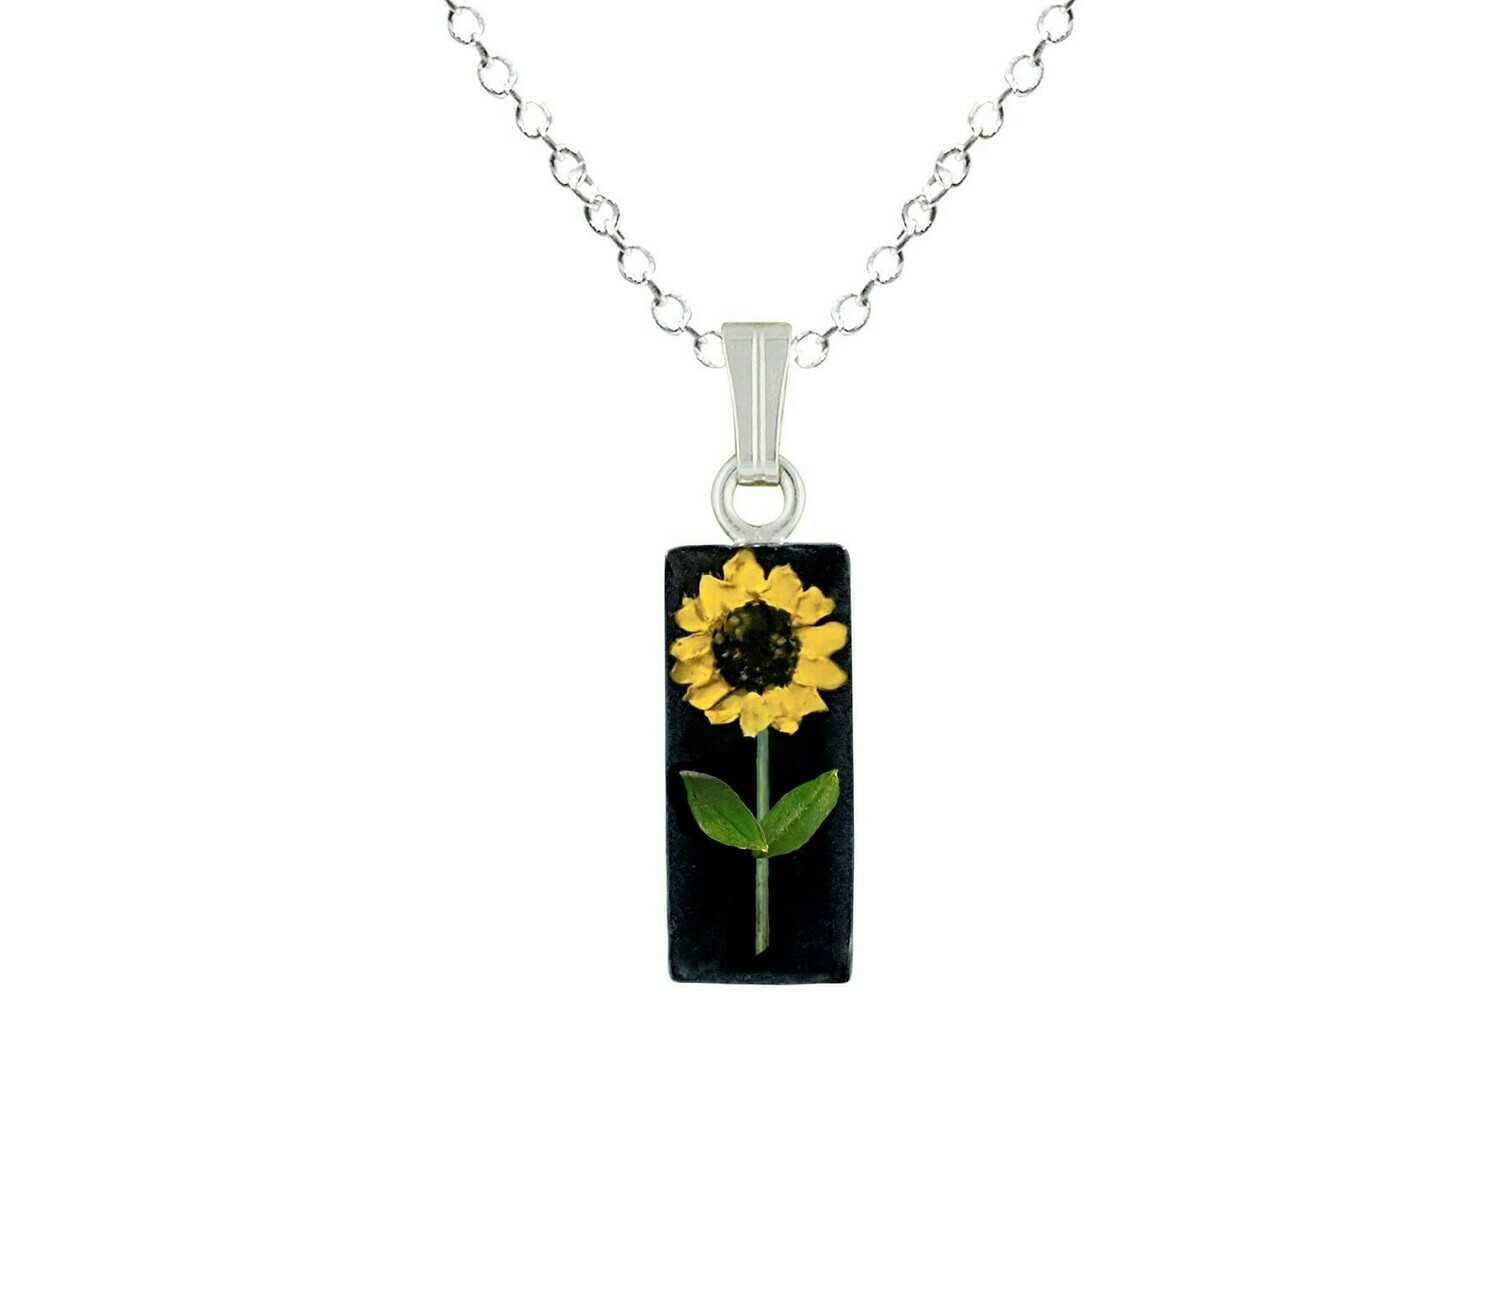 Sunflower Necklace, Small Rectangle, Black Background